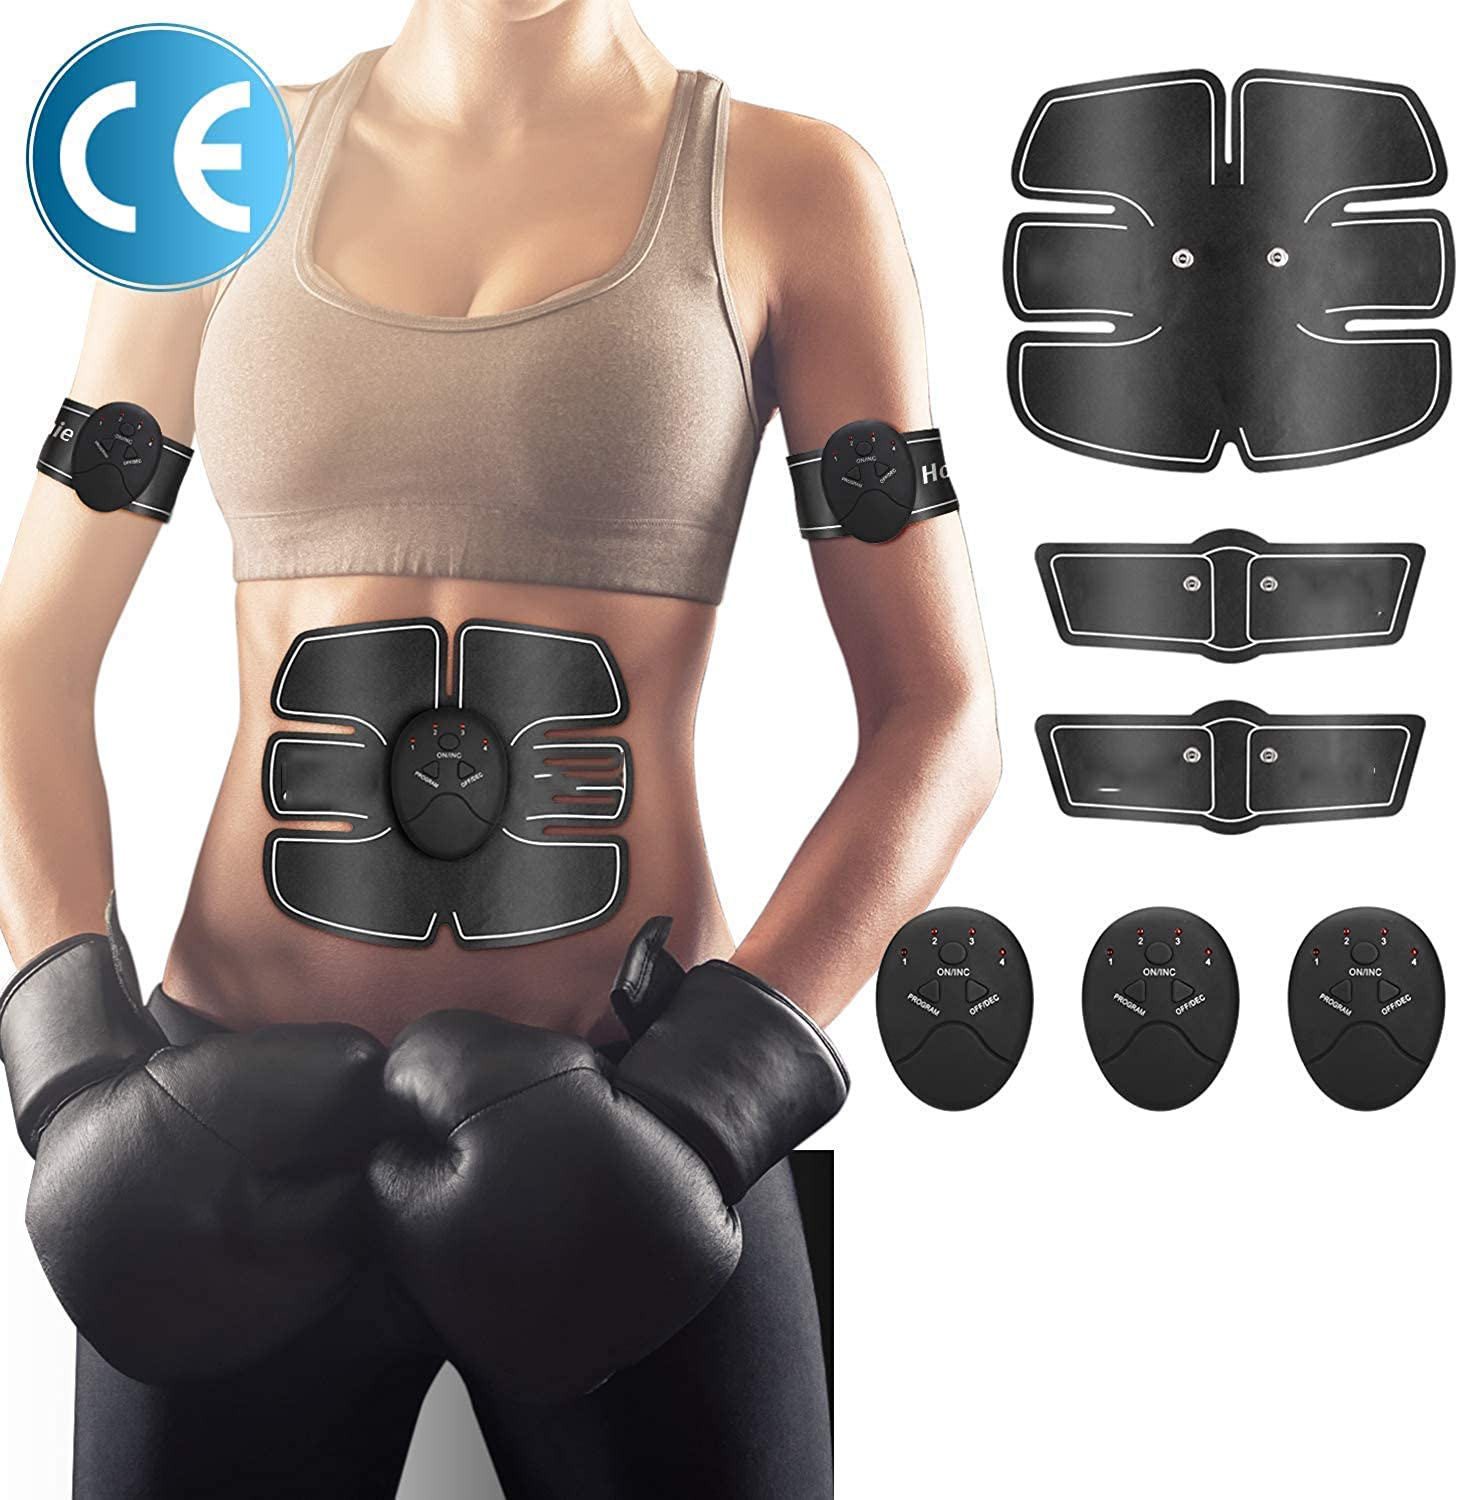 Abs Stimulator, Muscle Toner, Abdominal Muscle Toner, Abs Muscle Stimulator, Abs Trainer, Abs Stimulator Muscle Toner, Abs Stimulator for Men Women, Abs Stimulator Muscle Trainer